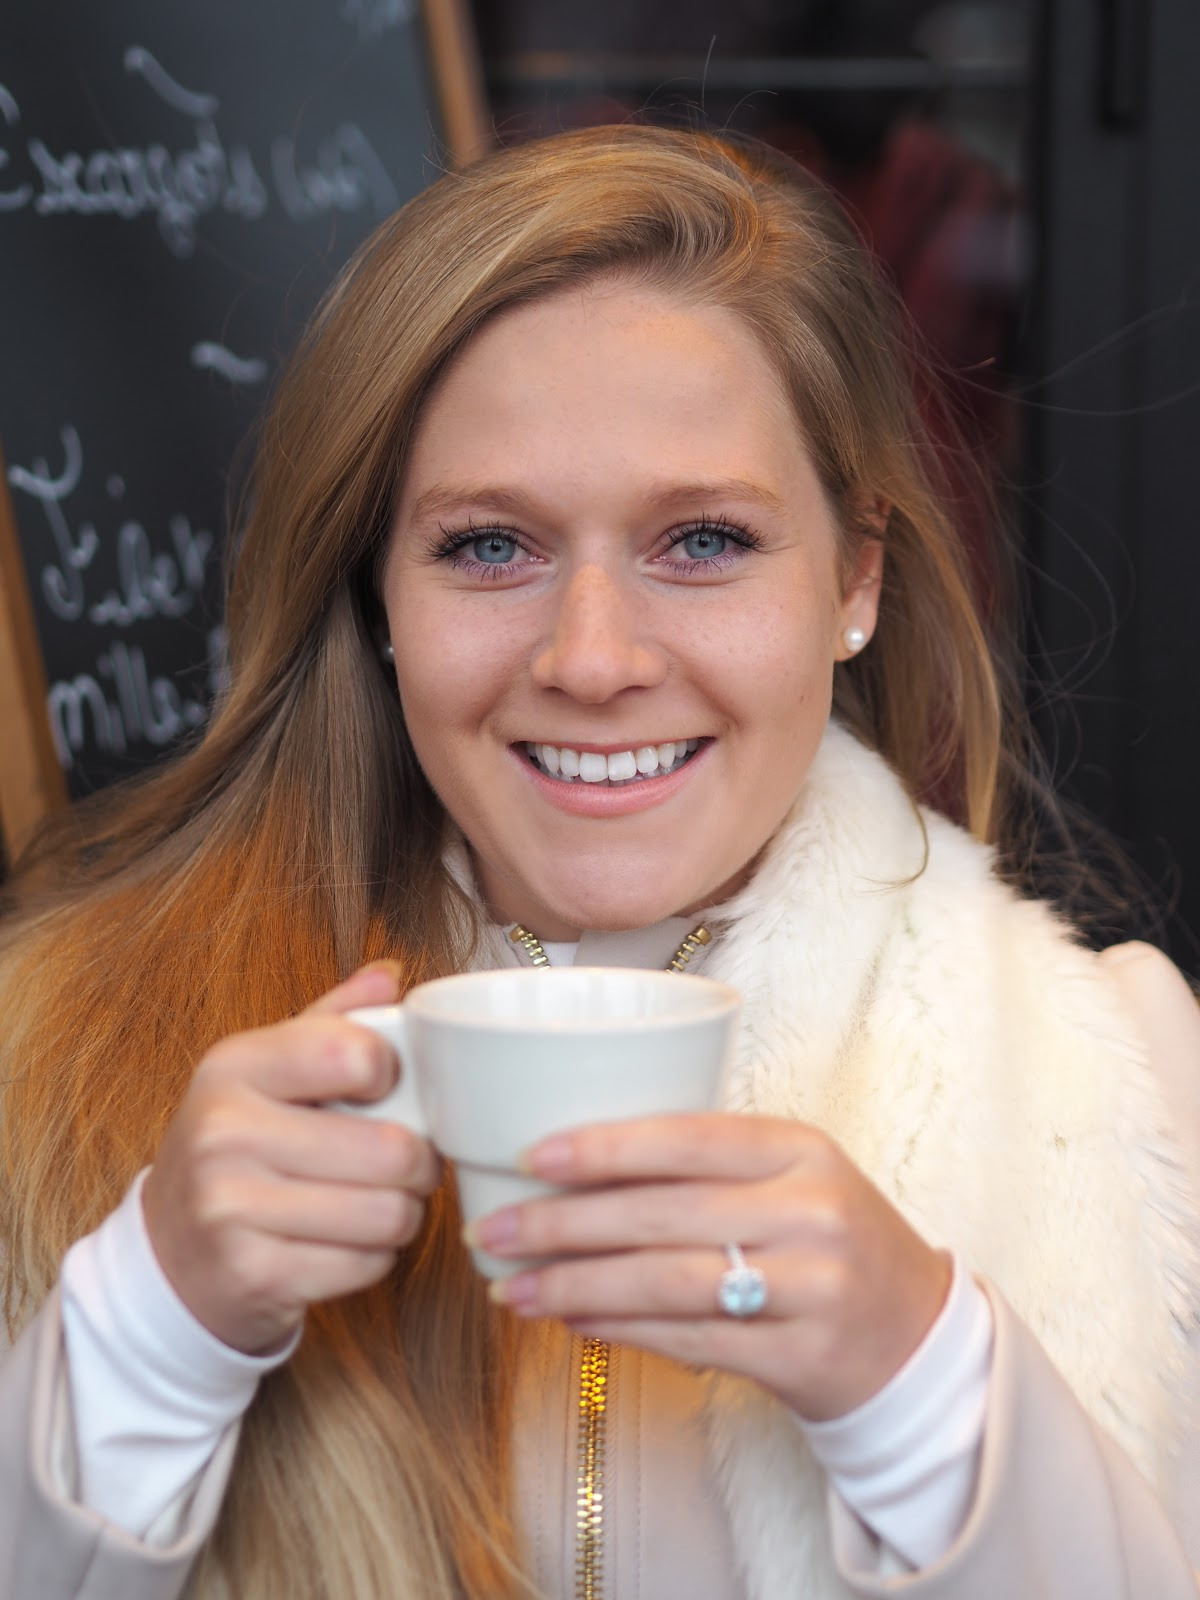 Blonde girl drinking mug of tea wearing fur stole